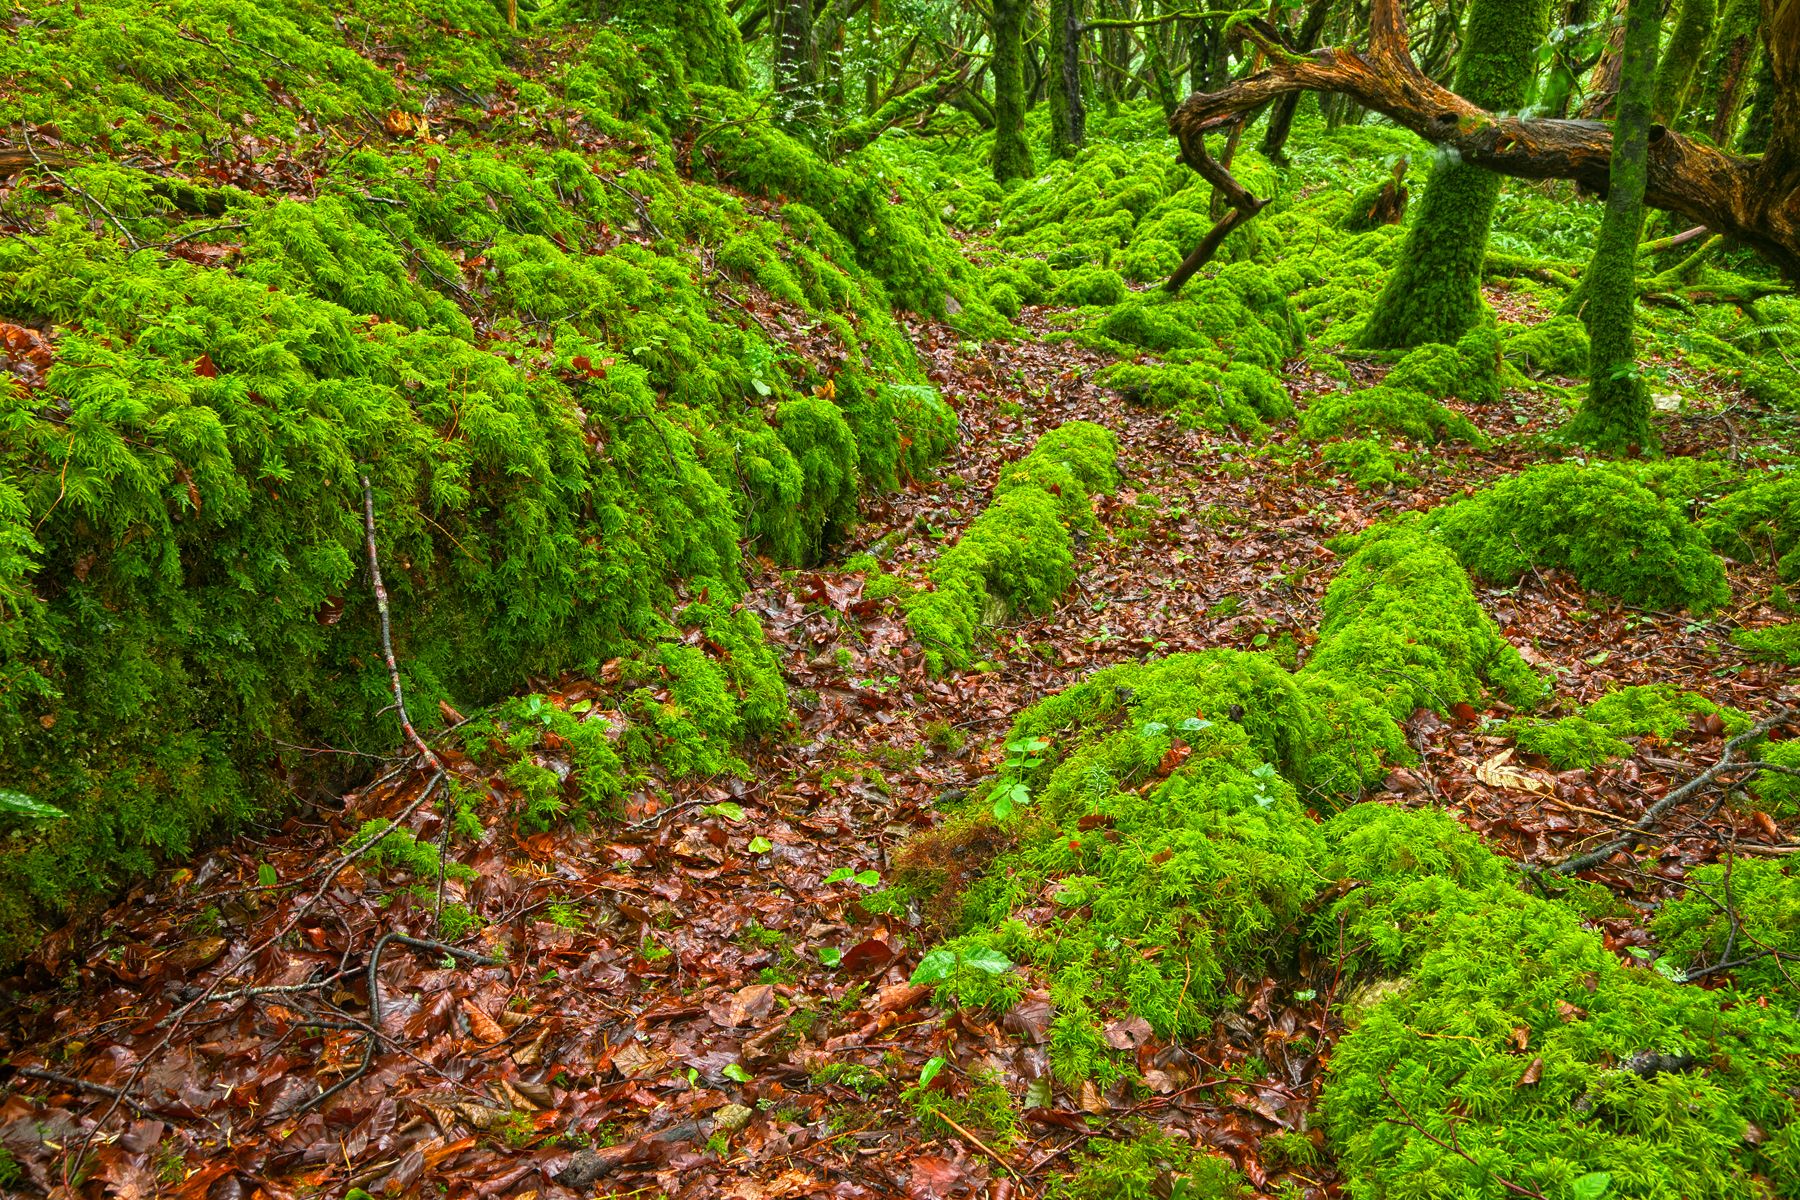 Killarney forest - hdr photo